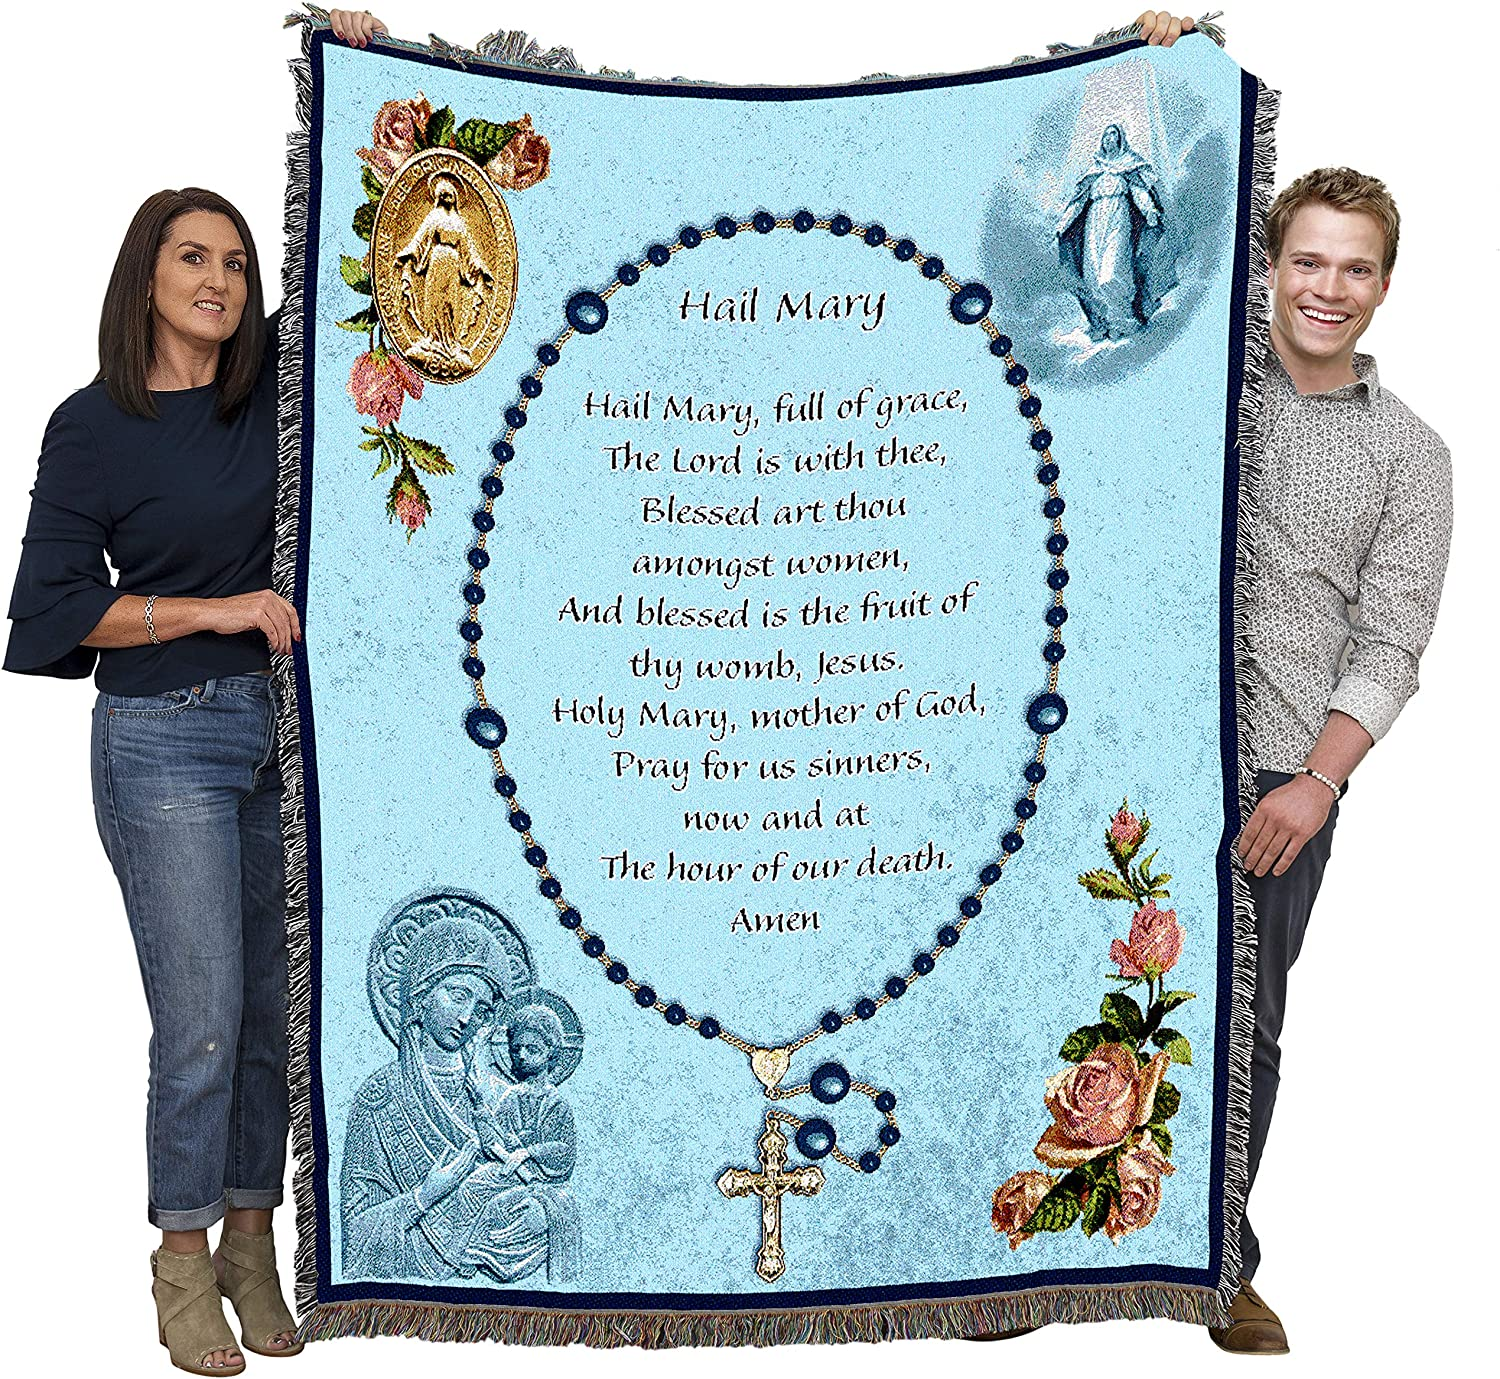 Pure Country Weavers Hail Mary Rosary Prayer Blanket Throw Woven from Cotton - Made in The USA (72x54)